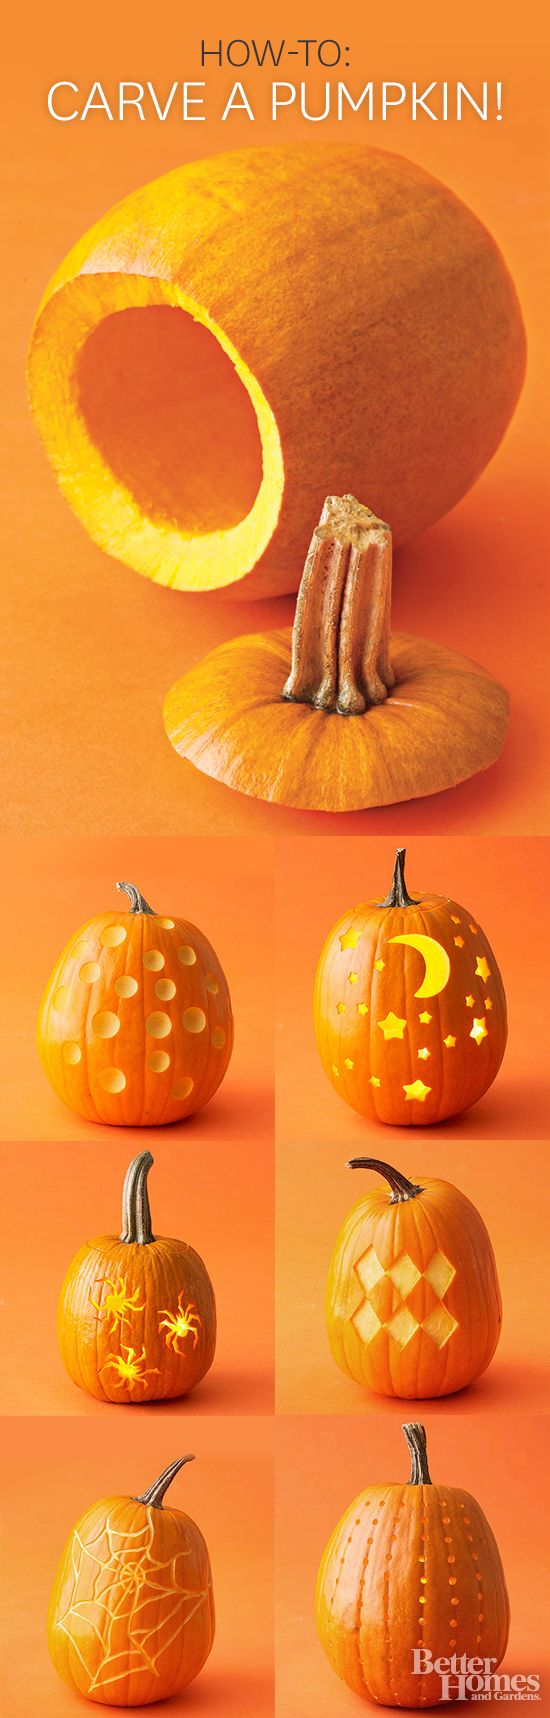 Curious about how to correctly carve a pumpkin? We have the answer here: http://www.bhg.com/halloween/pumpkin-carving/how-to/?socsrc=bhgpin100713howtocarveapumpkin